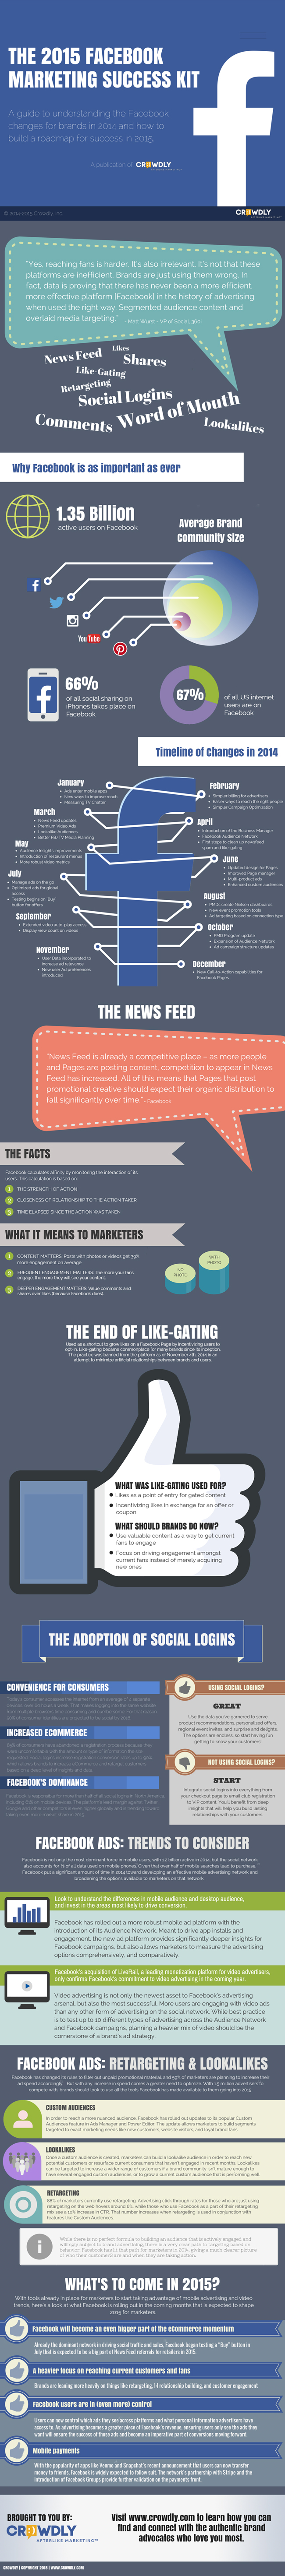 Crowdly2015FacebookMarketingKitInfographic